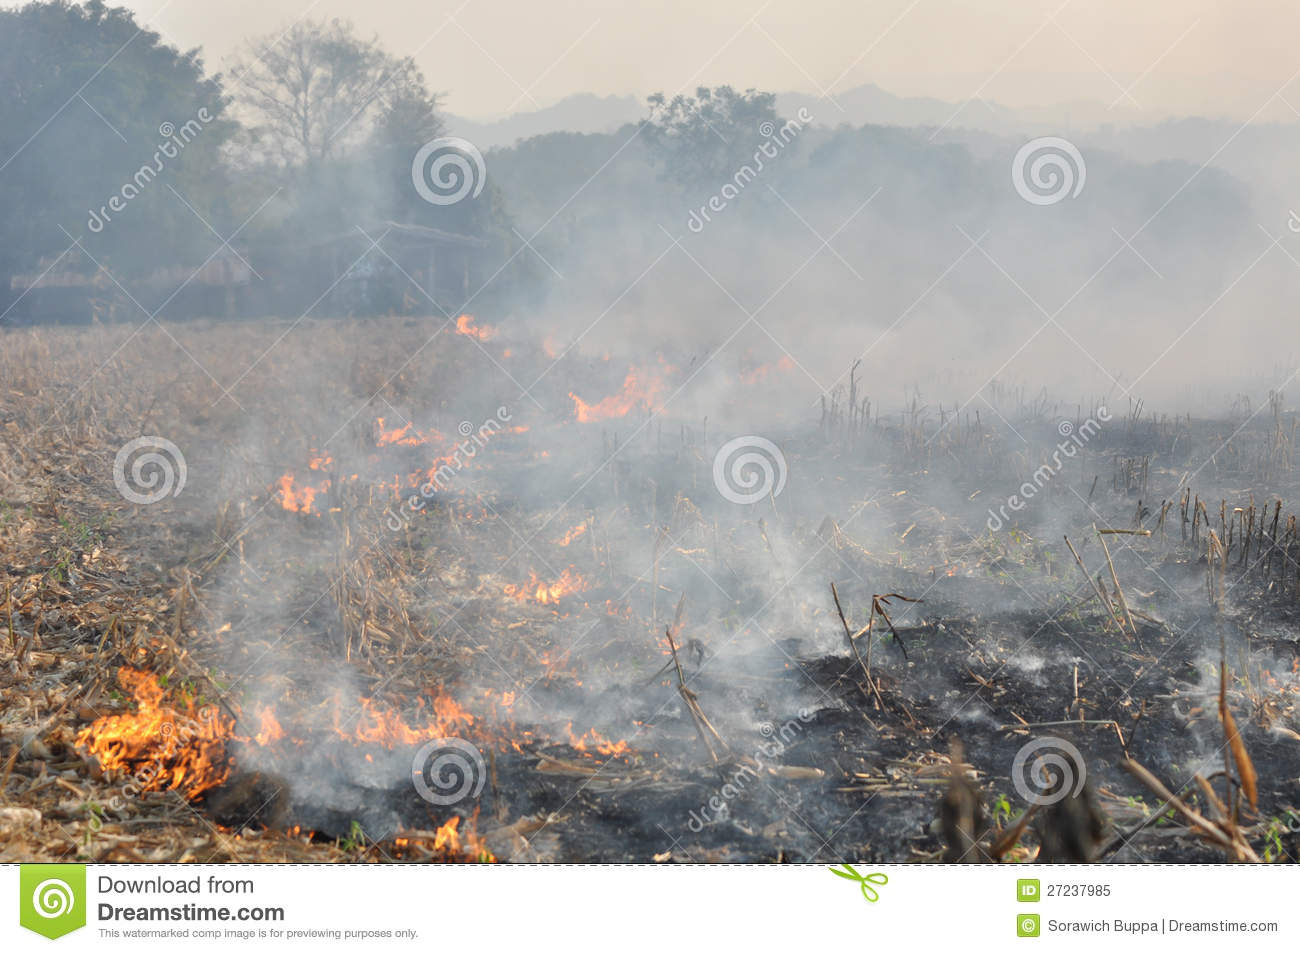 Fire in the corn field after harvest